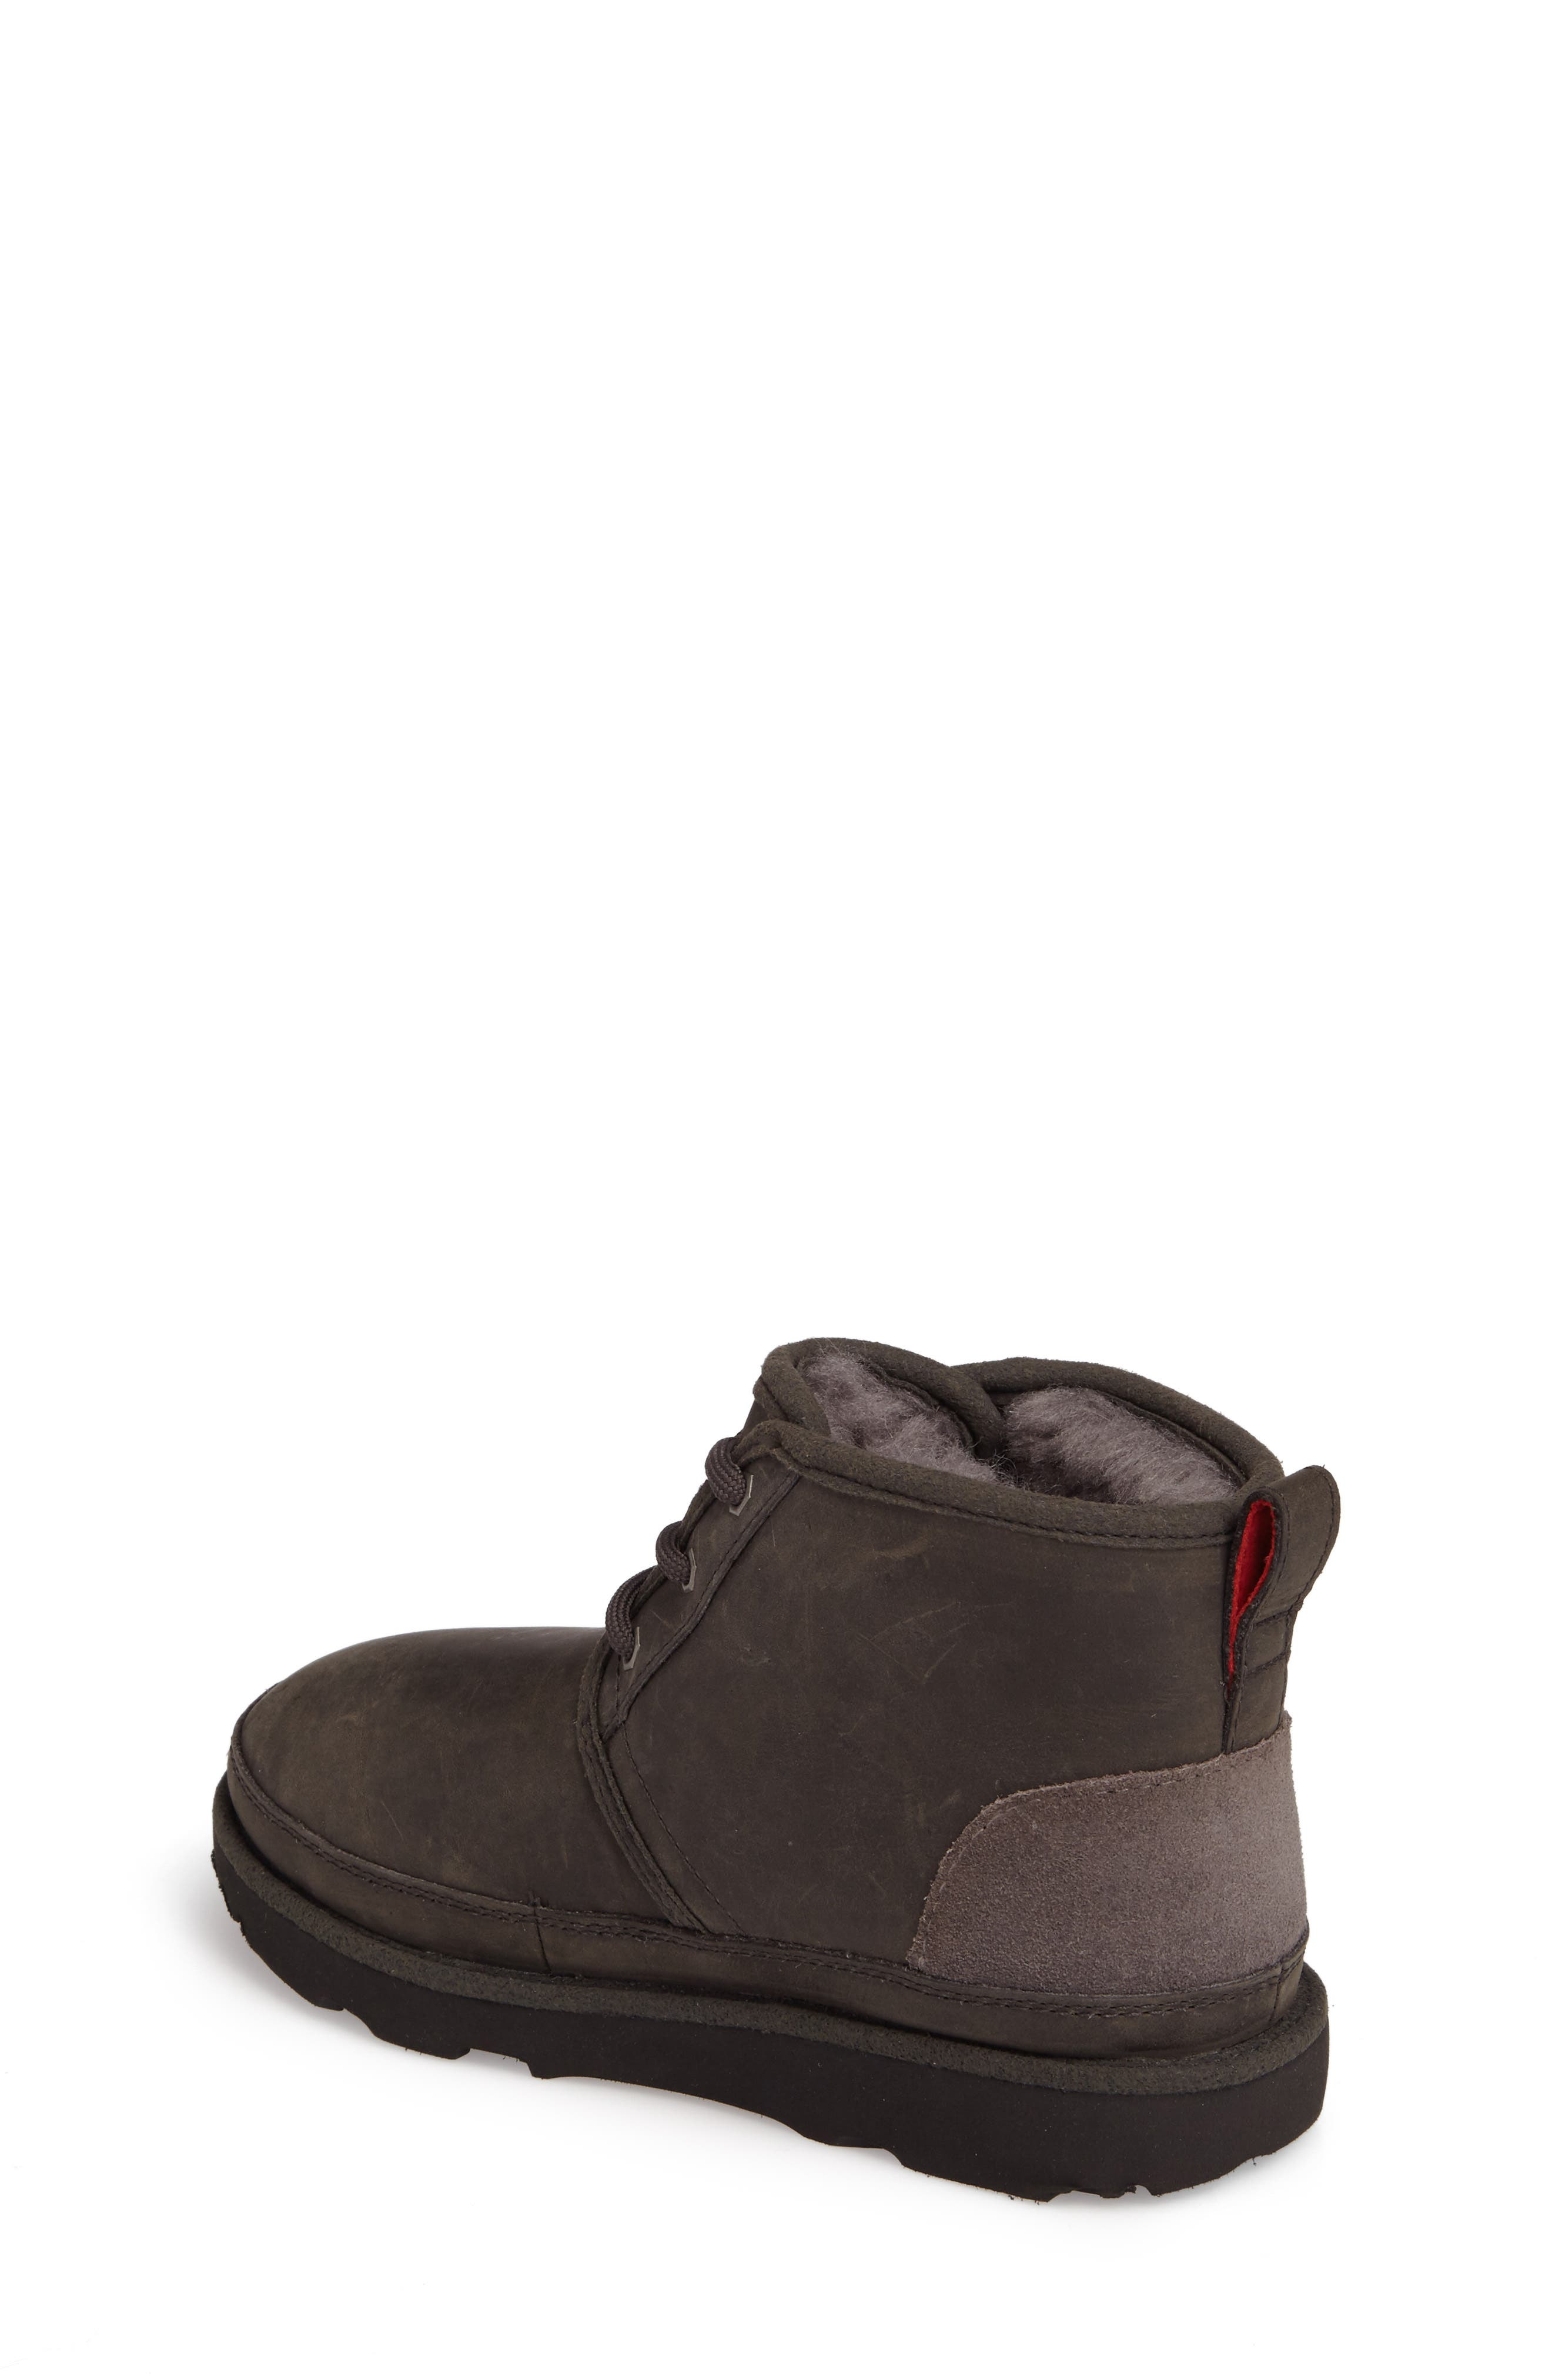 Neumel II Waterproof Chukka,                             Alternate thumbnail 2, color,                             CHARCOAL